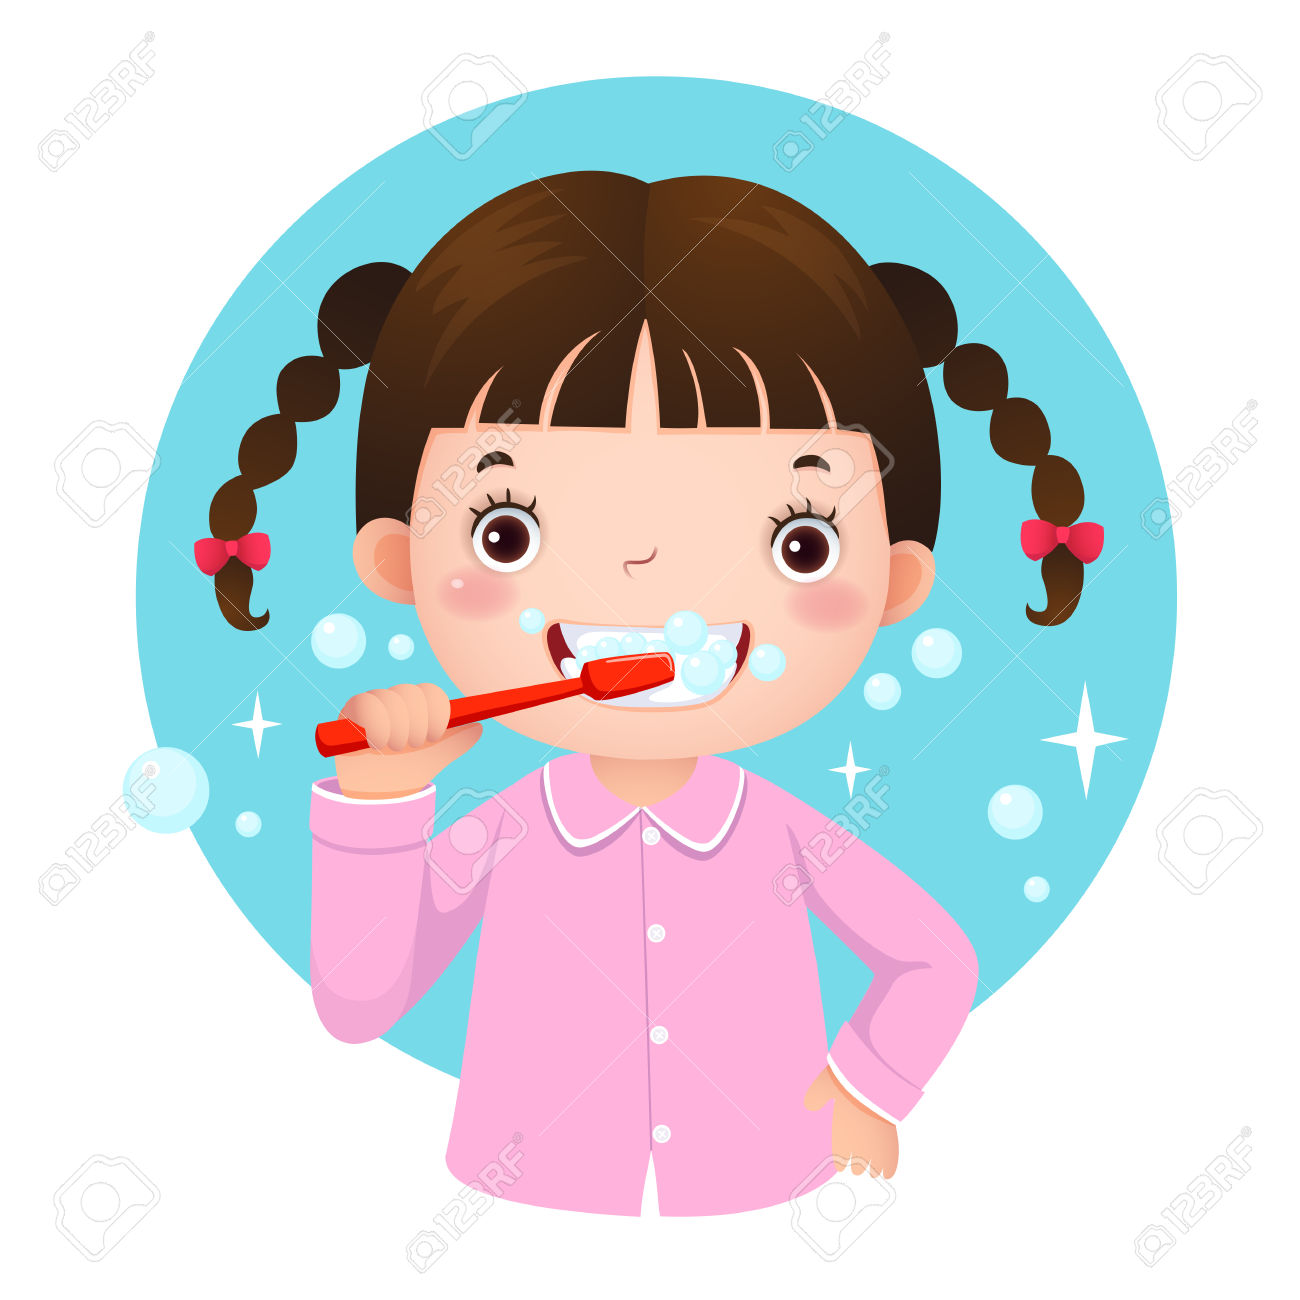 Picture Of A Girl Brushing Her Teeth Clipart.